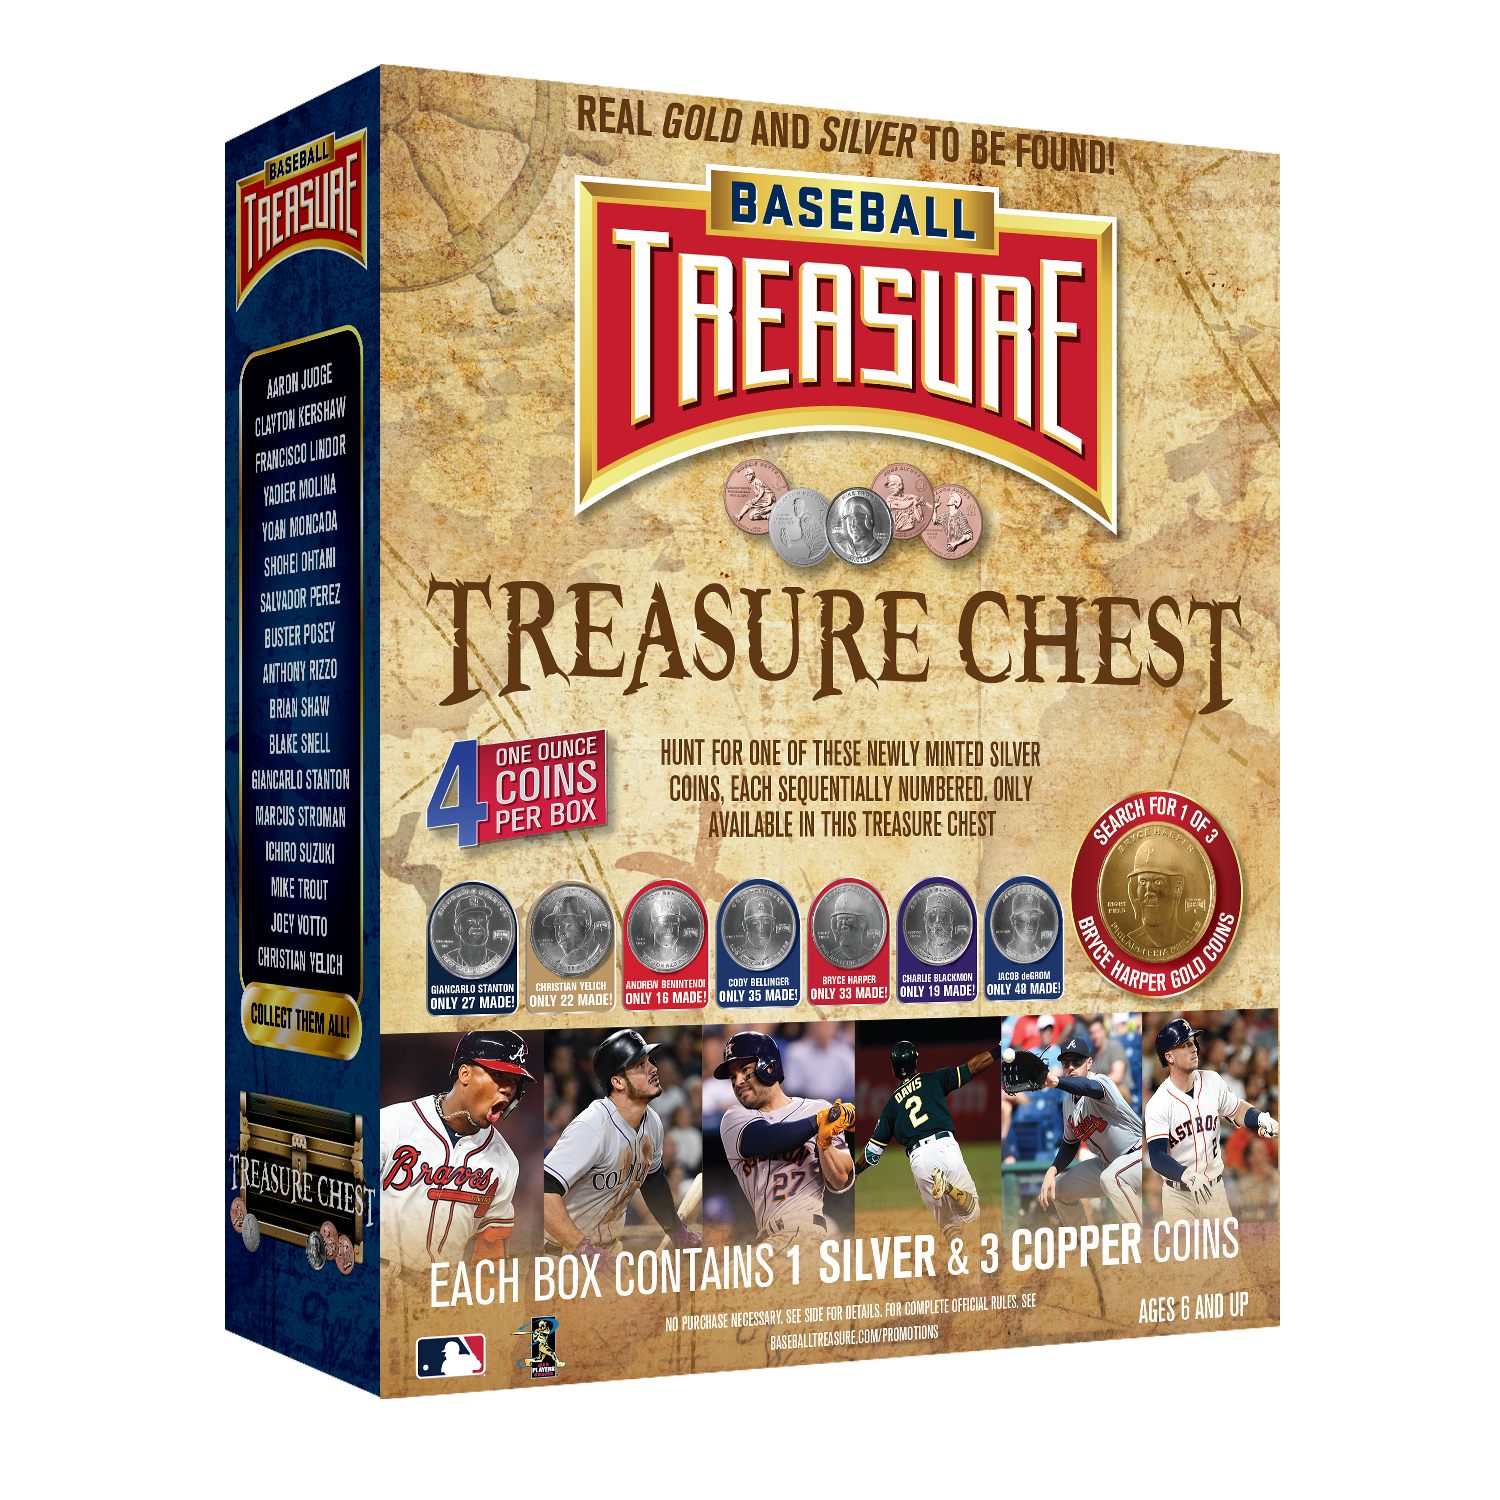 Each Treasure Chest will have :  1  Silver Coin , each .999% pure silver minted coin of a baseball Superstar. 1:6 boxes will have a sequentially numbered edition Silver coin that has never before been minted. Every 6th box (1 per case) at random will have either a  Christian Yelich Silver Coin  (1 of 22),  Andrew Benintendi Silver Coin  (1 of 16),  Cody Bellinger Silver Coin  (1 of 35),  Giancarlo Stanton Silver Coin  (1 of 27),  Bryce Harper Silver Coin  (1 of 33), a  Jacob deGrom Silver Coin ( 1 of 48) or a  Charlie Blackmon Silver Coin  (1 of 19). These three numbered silver coins have never been released before, nor will they ever be released again. These are the only silver copies of these three stars of the 2019 season.  3 Copper Coins, each .999% pure copper minted coin of a baseball Superstar - Hunt for all 32 copper coins at random from the collection.   Very Special Treasure Chest Bonus....   Search for Gold! 3 redemption coins are found 1 in every 400 boxes at random. These can be redeemed for an incredibly special, 1 oz .999%  pure GOLD minted coin of Bryce Harper. Only 3 have been made - only 3 will ever be made-  in pure GOLD! The intrinsic value, as well as the collectible value of numbering that matches Harper's  Phillies  uniform number makes this an amazing opportunity for Harper fans!    Collectors, Box Breakers and Fans will have fun with this Treasure Chest - every chest opened contains precious metal. Captain Jack Sparrow will be jealous!